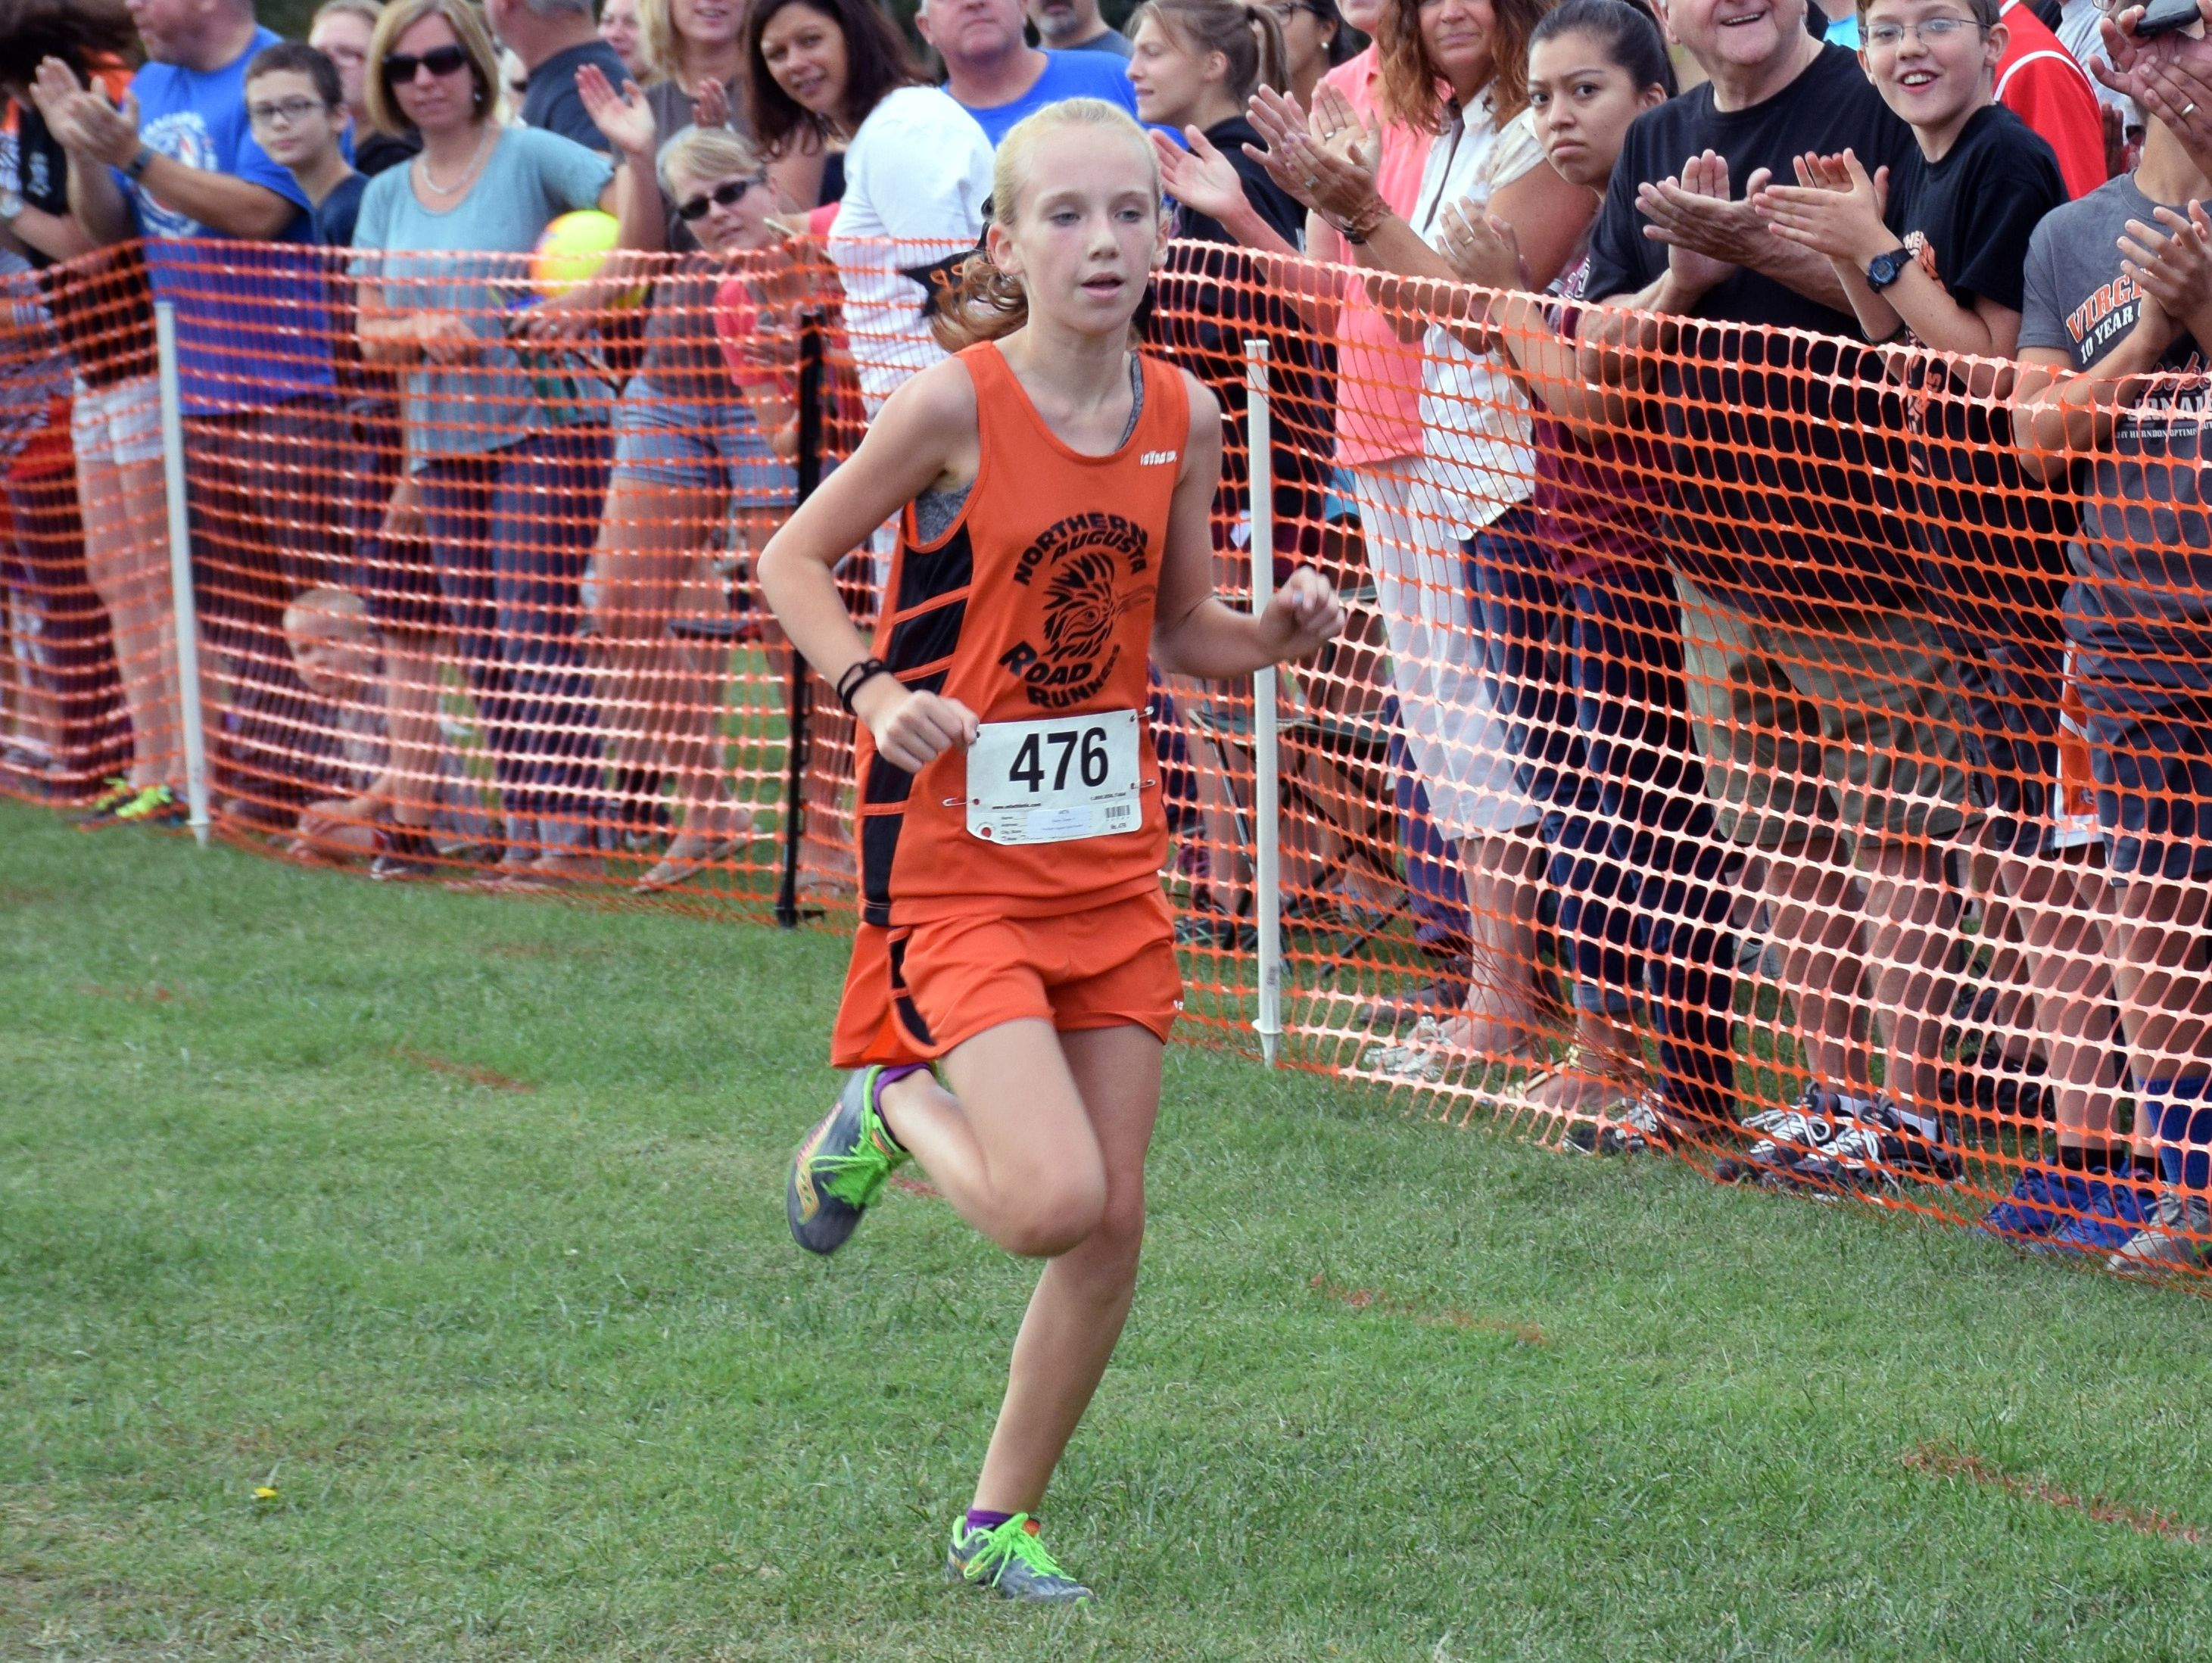 Emma Staley of the North Augusta Running Club heads to the finish line to win the middle school girls race at the Augusta County Cross Country Invitational at Wilson Workforce and Rehabilitation Center in Fishersville, Va., on Saturday, Sept. 17, 2016.